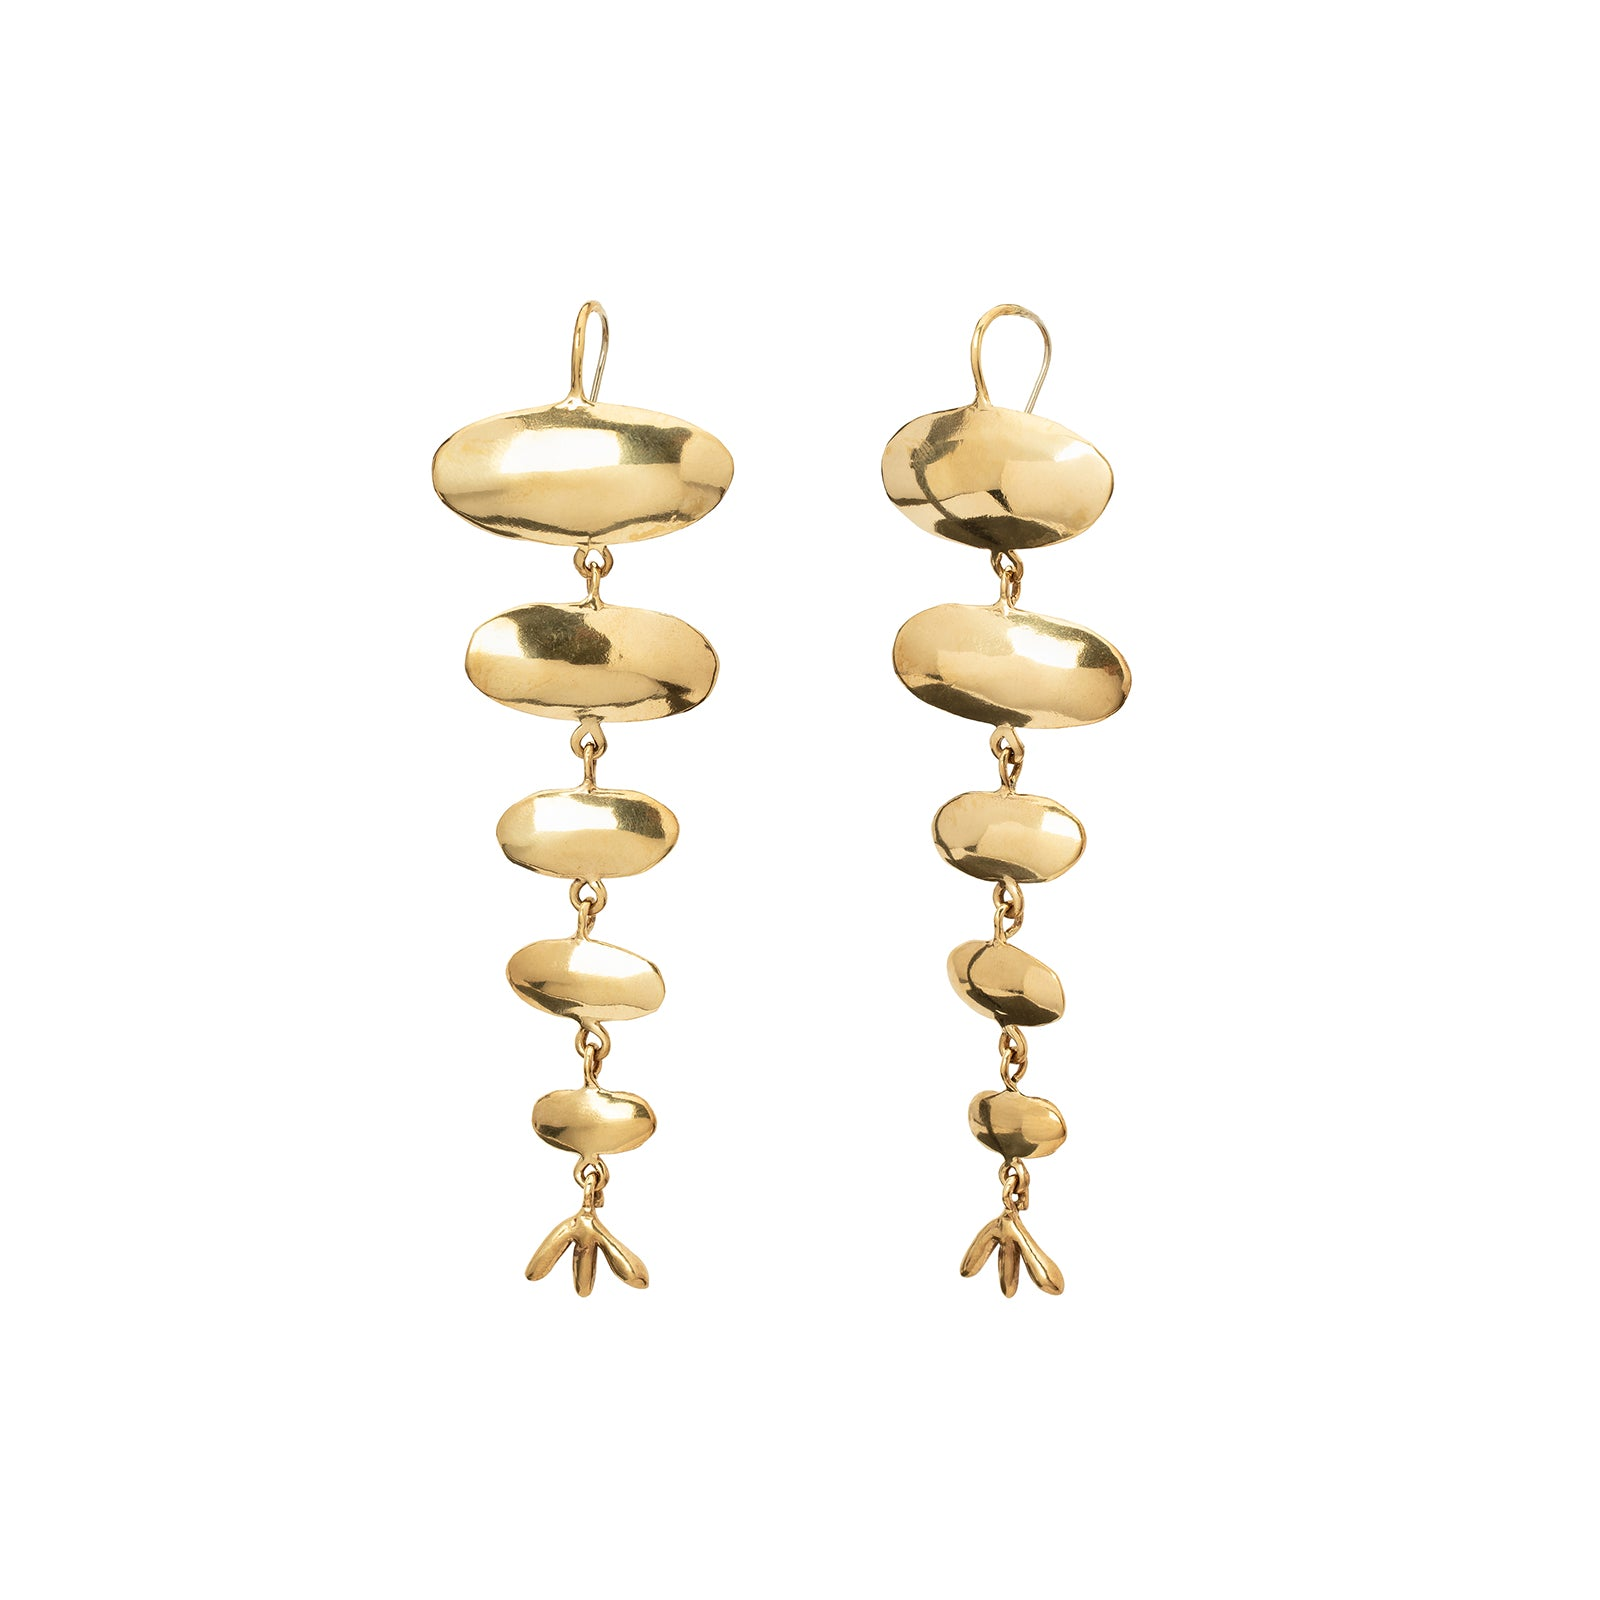 Ariana Boussard-Reifel Papyrus Long Earrings - Brass - Earrings - Broken English Jewelry